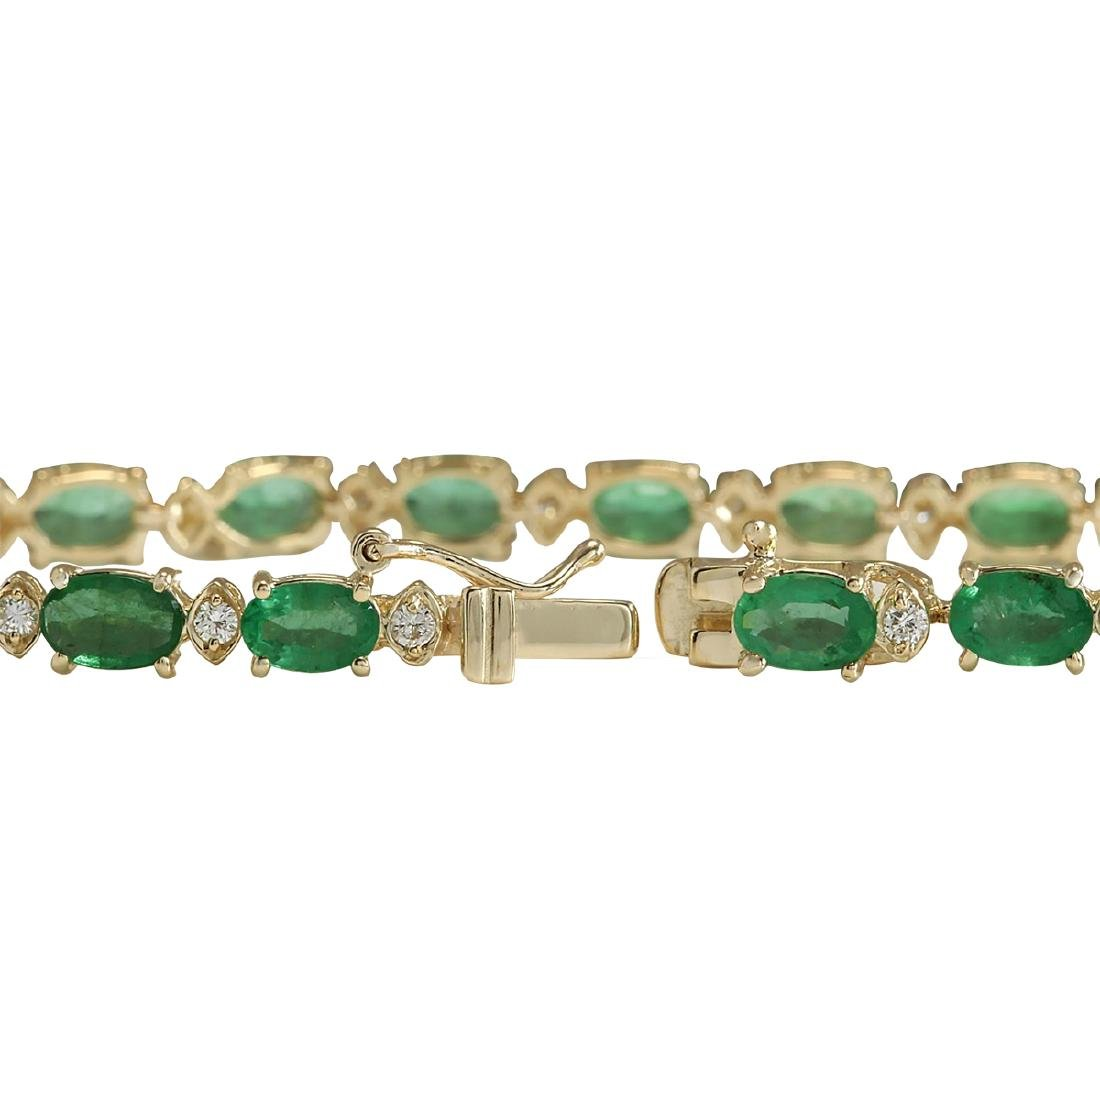 8.86CTW Natural Colombian Emerald And Diamond Bracelet - 2